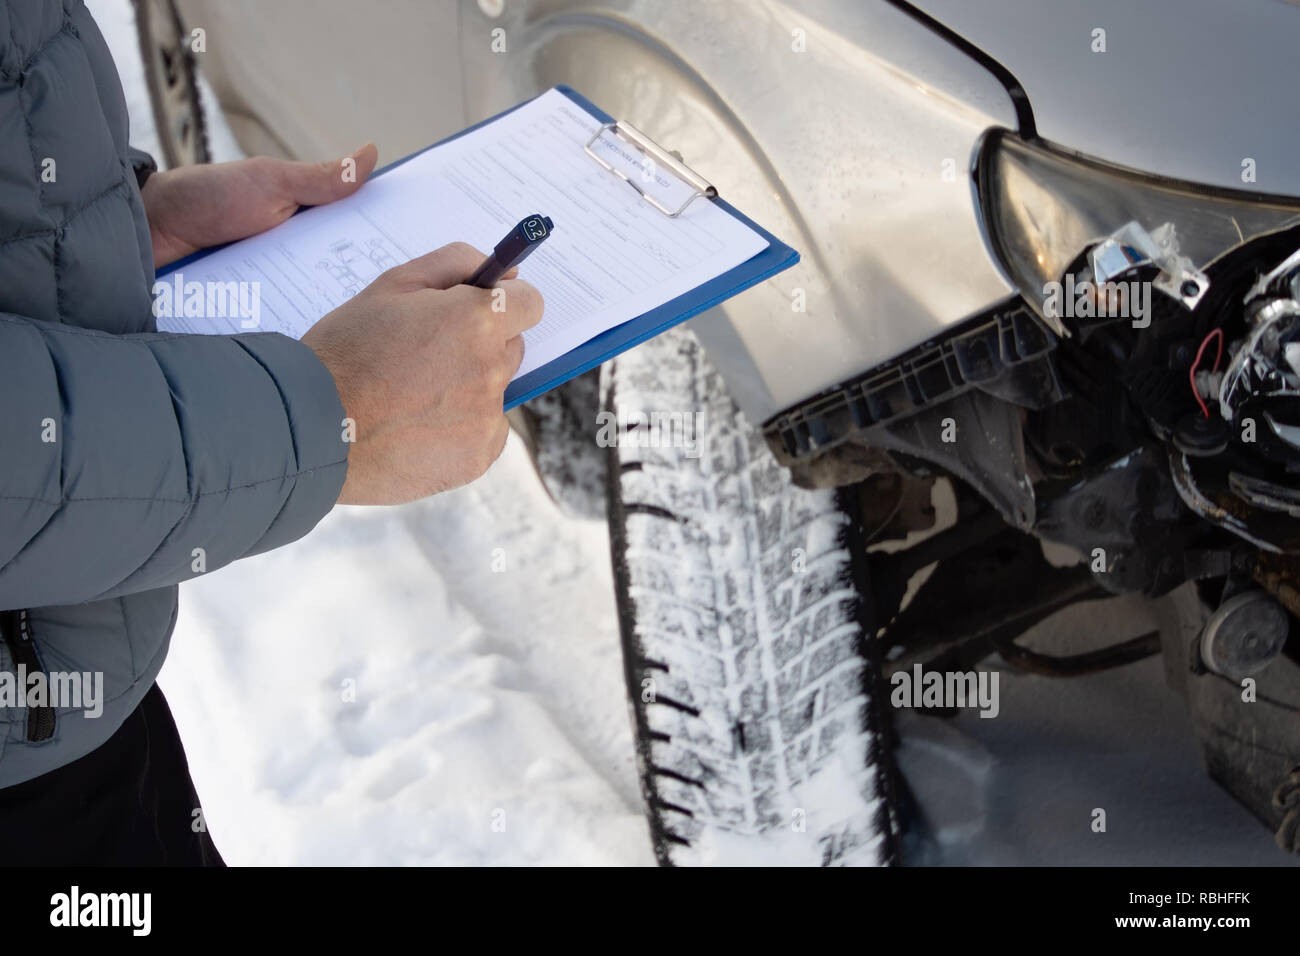 Insurance agent checking car after car accident and filling accident details form. Winter time. Focus on hands. - Stock Image